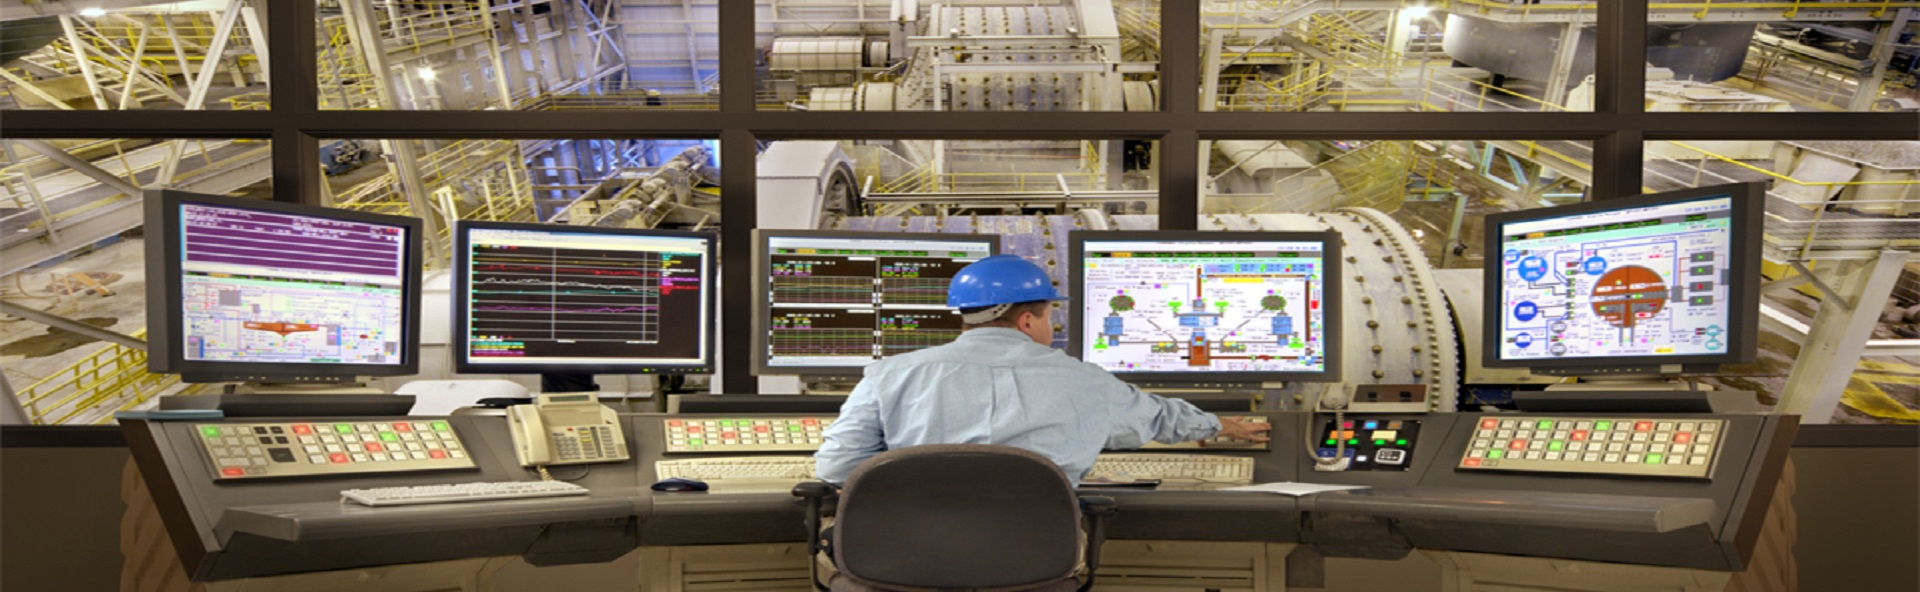 Young man sitting by computers in control room, rear view